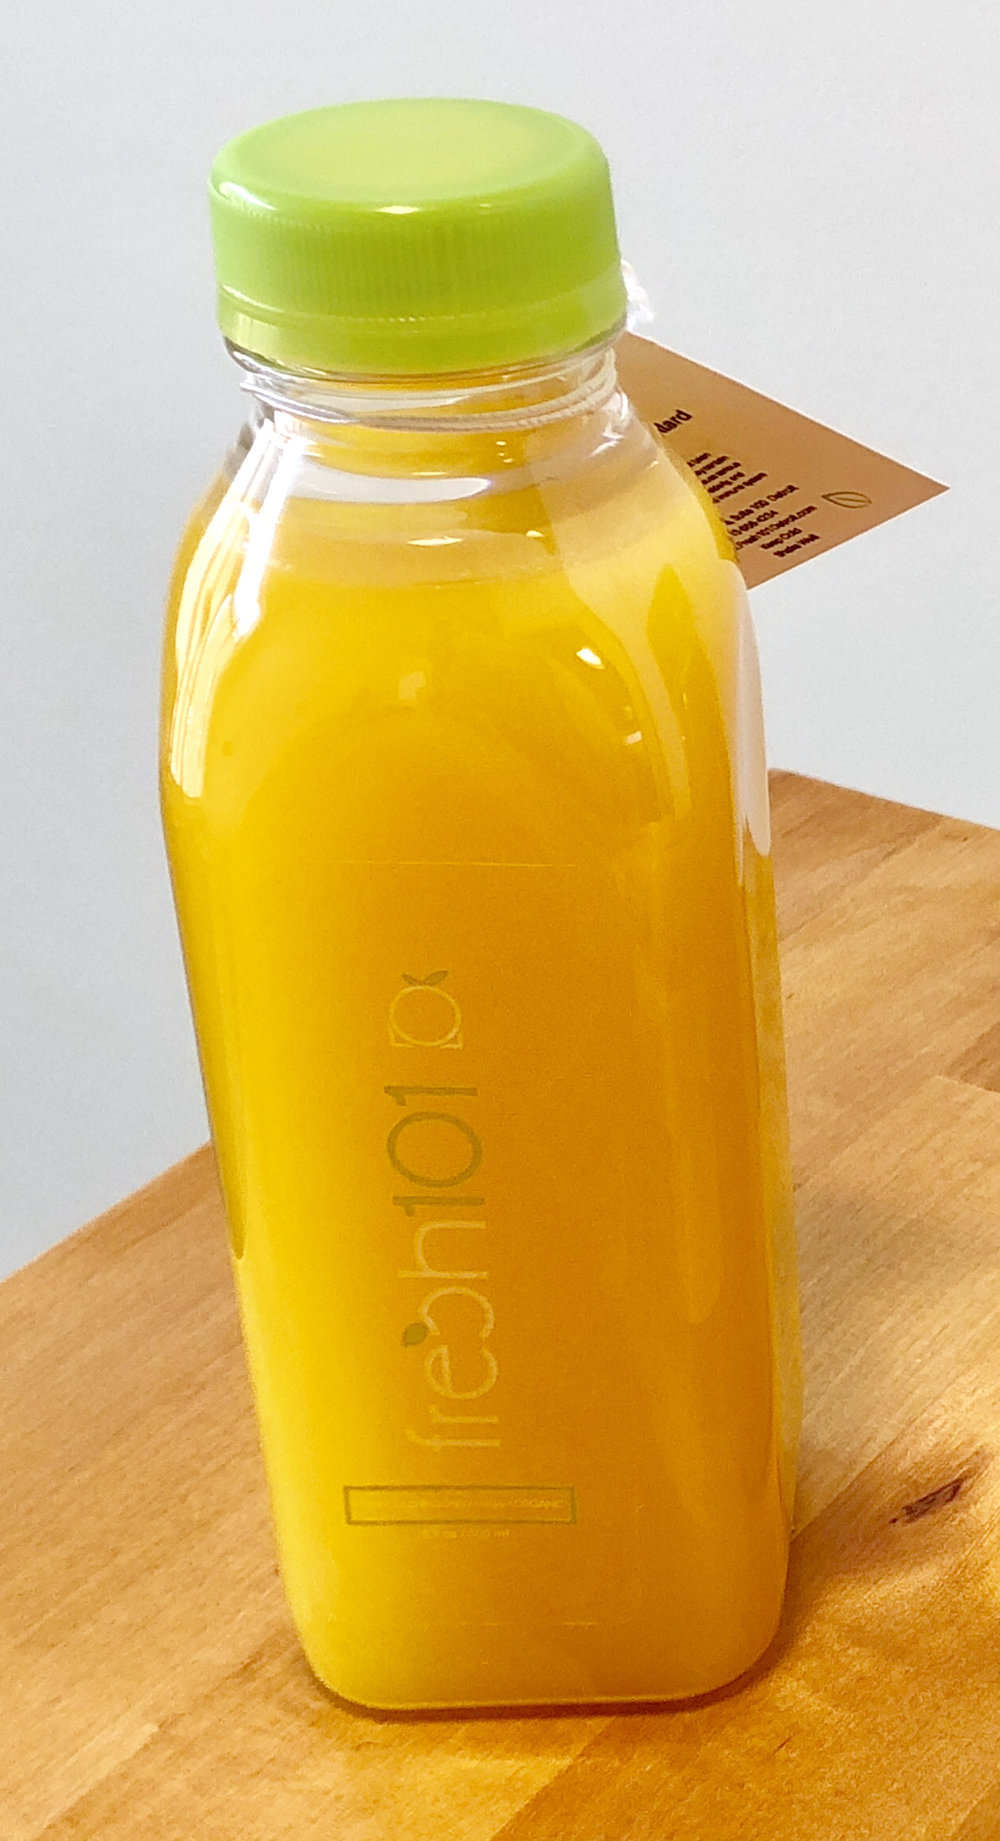 BELLA - Orange, pineapple, grapefruit, turmeric & ginger